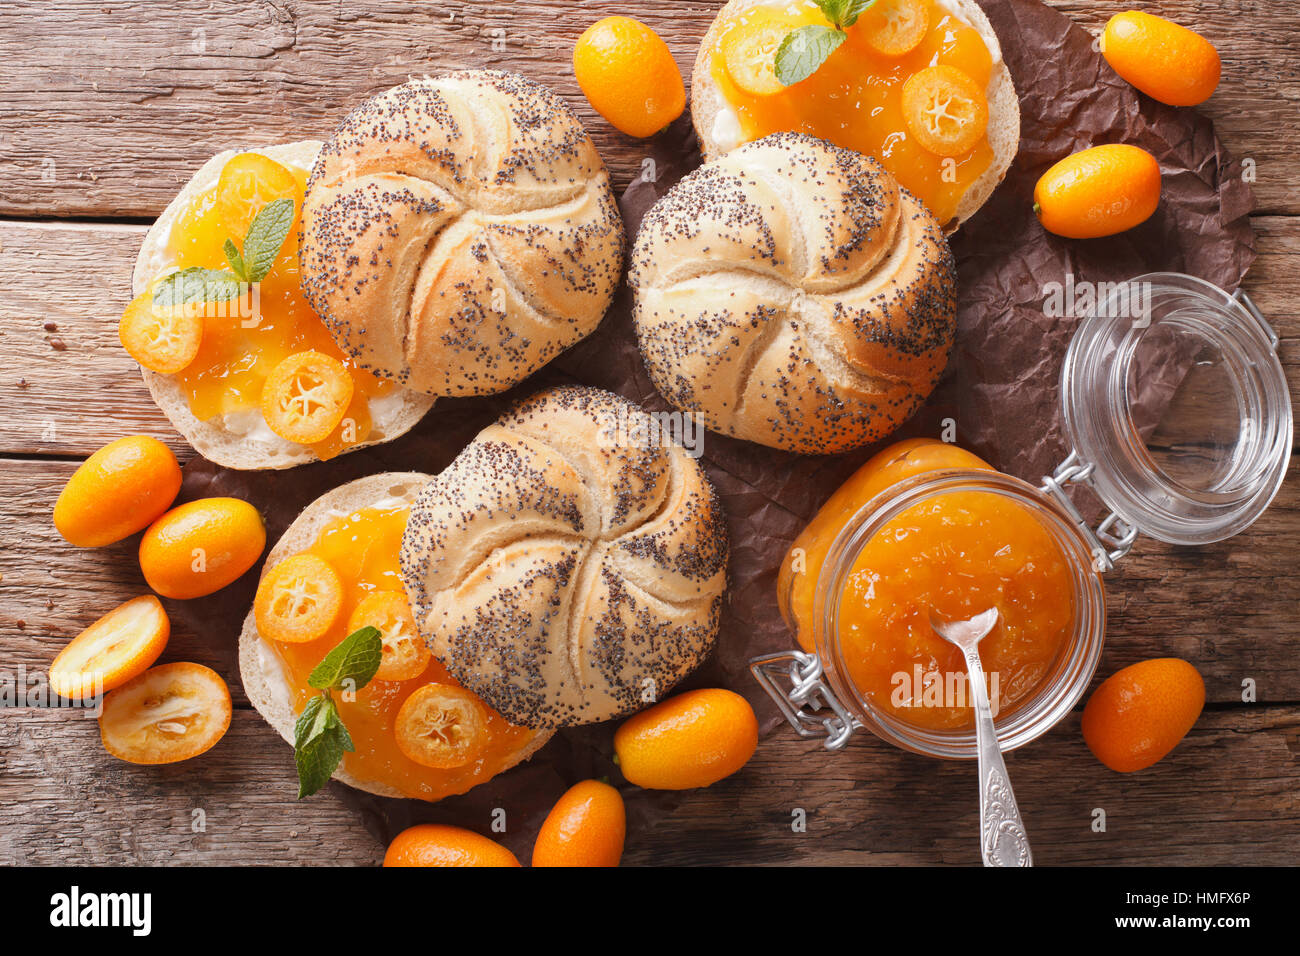 Sweet buns with kumquat jam and cream cheese close-up on the table. Horizontal view from above - Stock Image